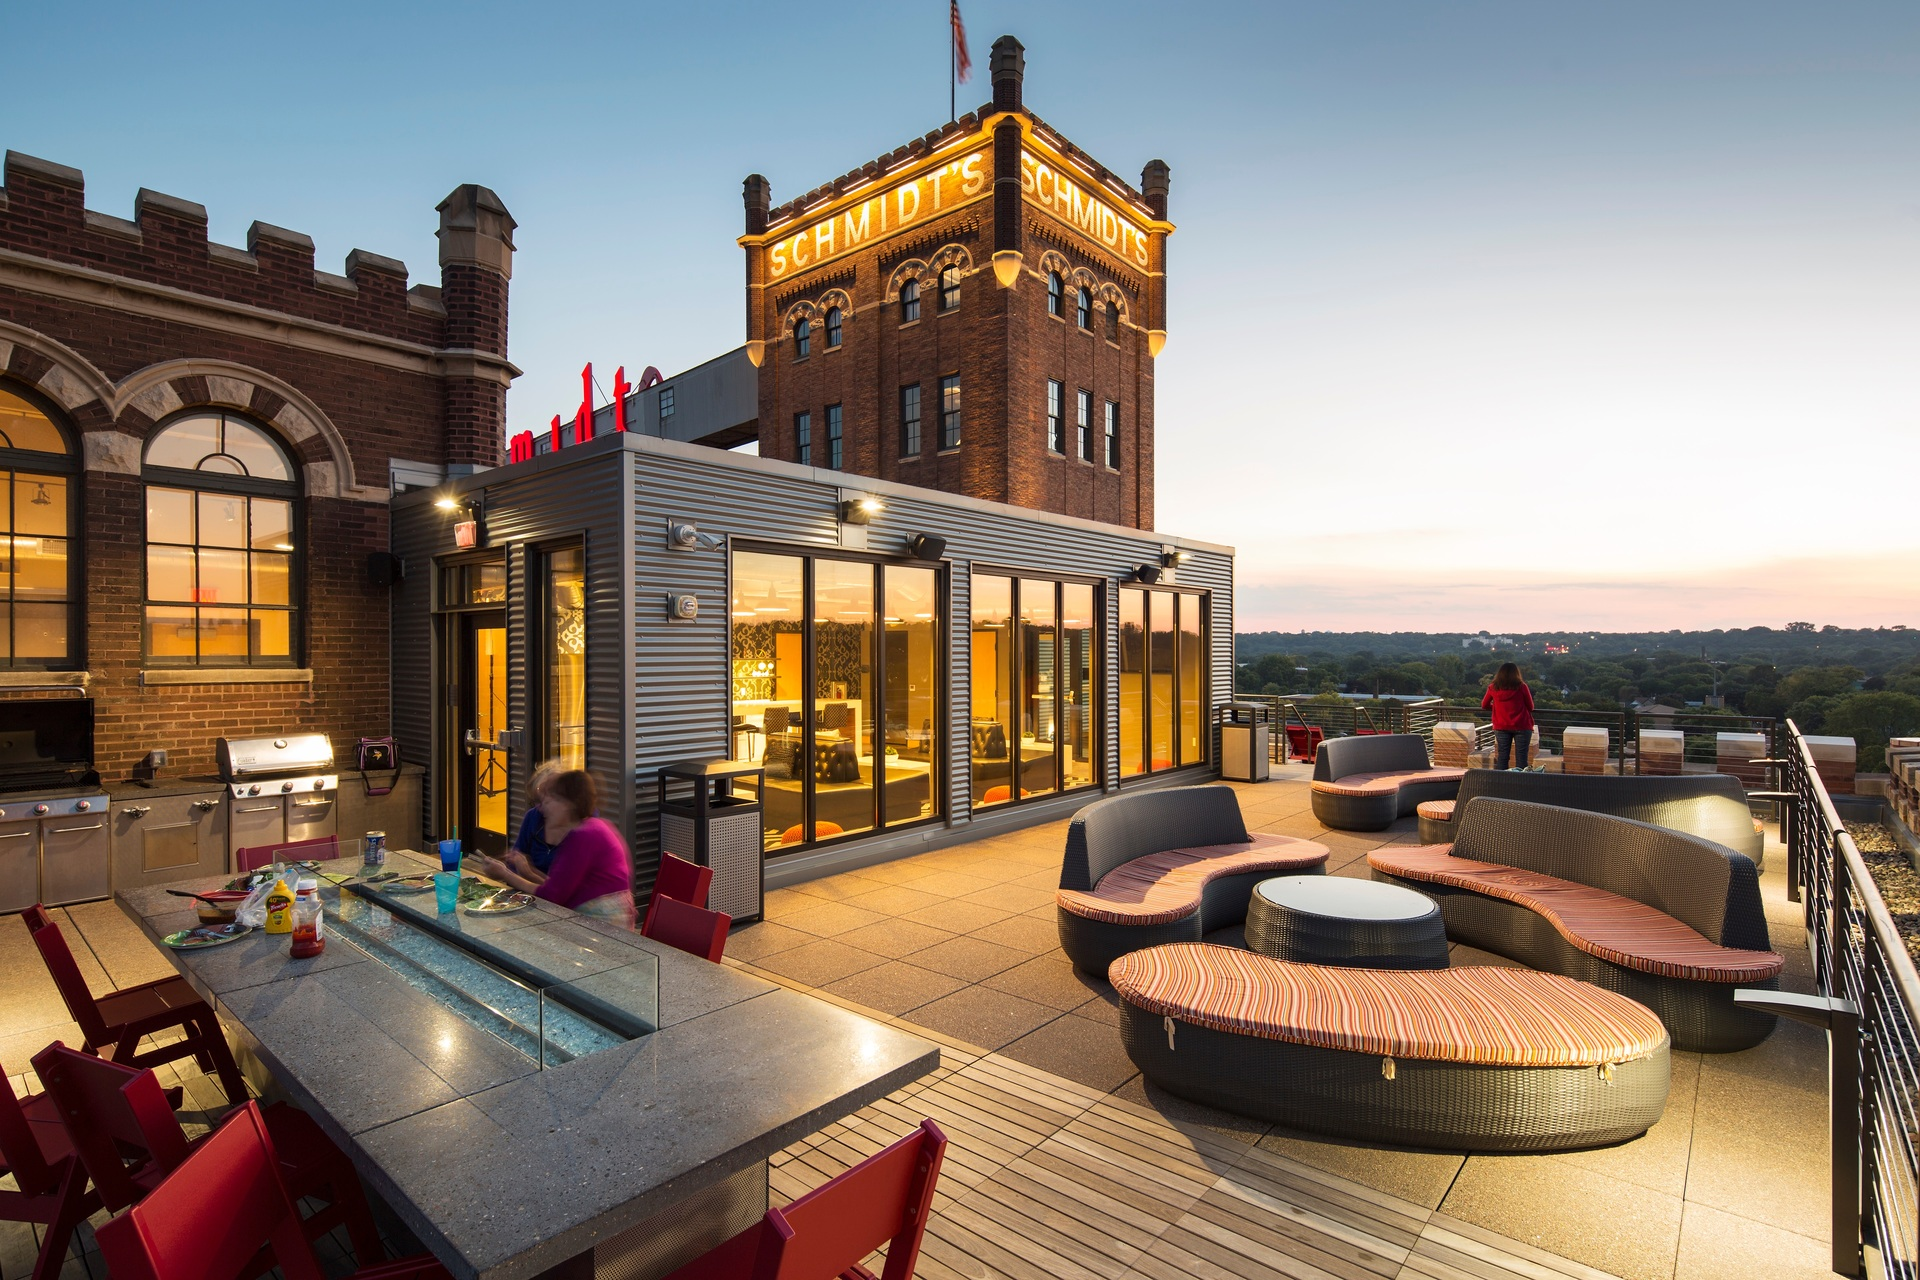 BKV Architects used Bison Wood Deck Tiles to provide an inviting, modern retreat to relax on the rooftop of the new Schmidt Artist Lofts. The modular deck tiles and adjustable pedestals gave the team design flexibility for the unique space.  Photography Credit: Troy Theis